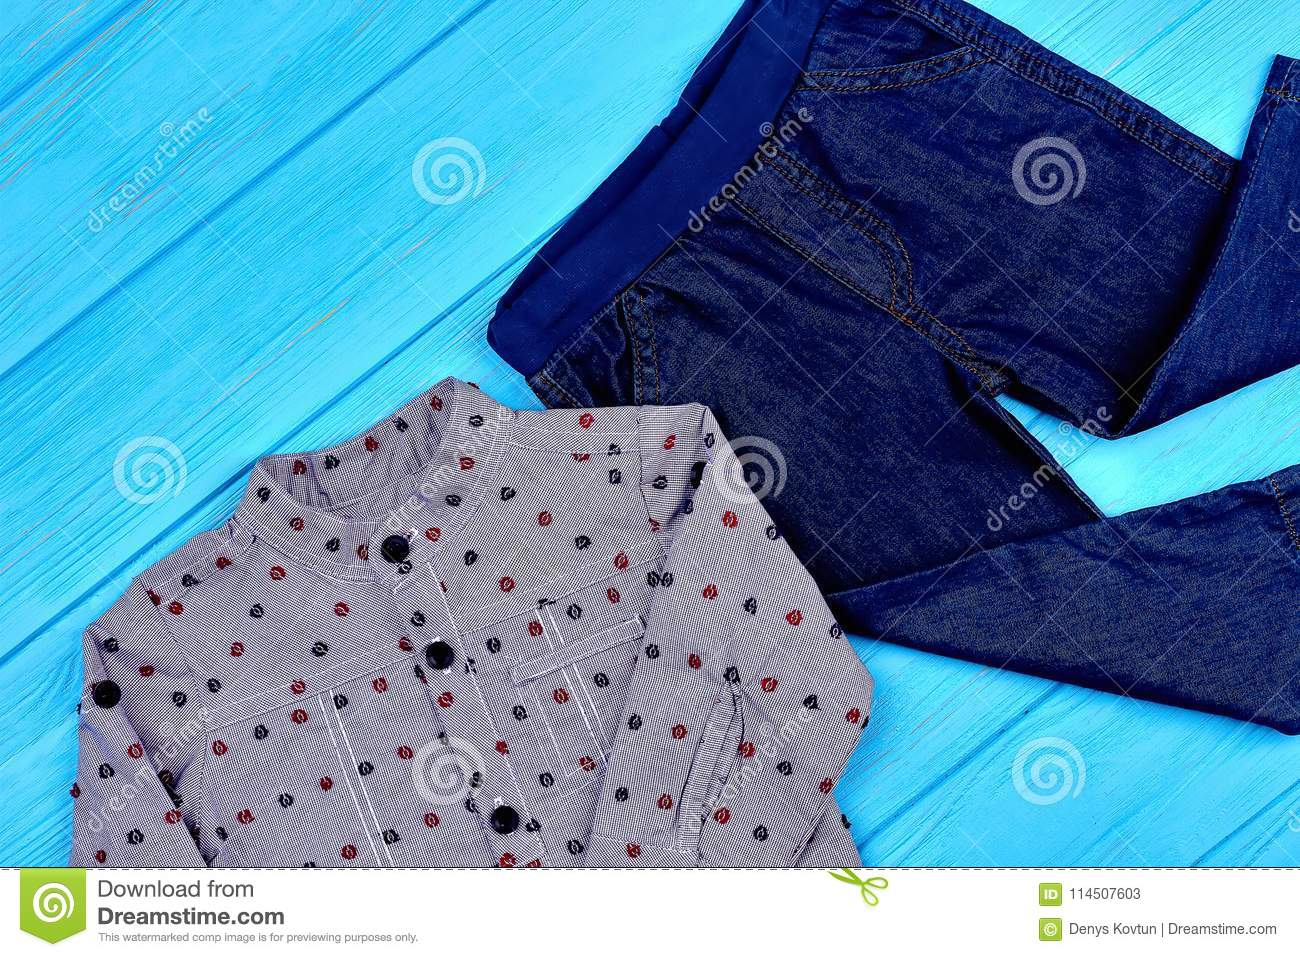 e8c16f0ae Baby-boy Modern Jeans Apparel. Stock Image - Image of little ...